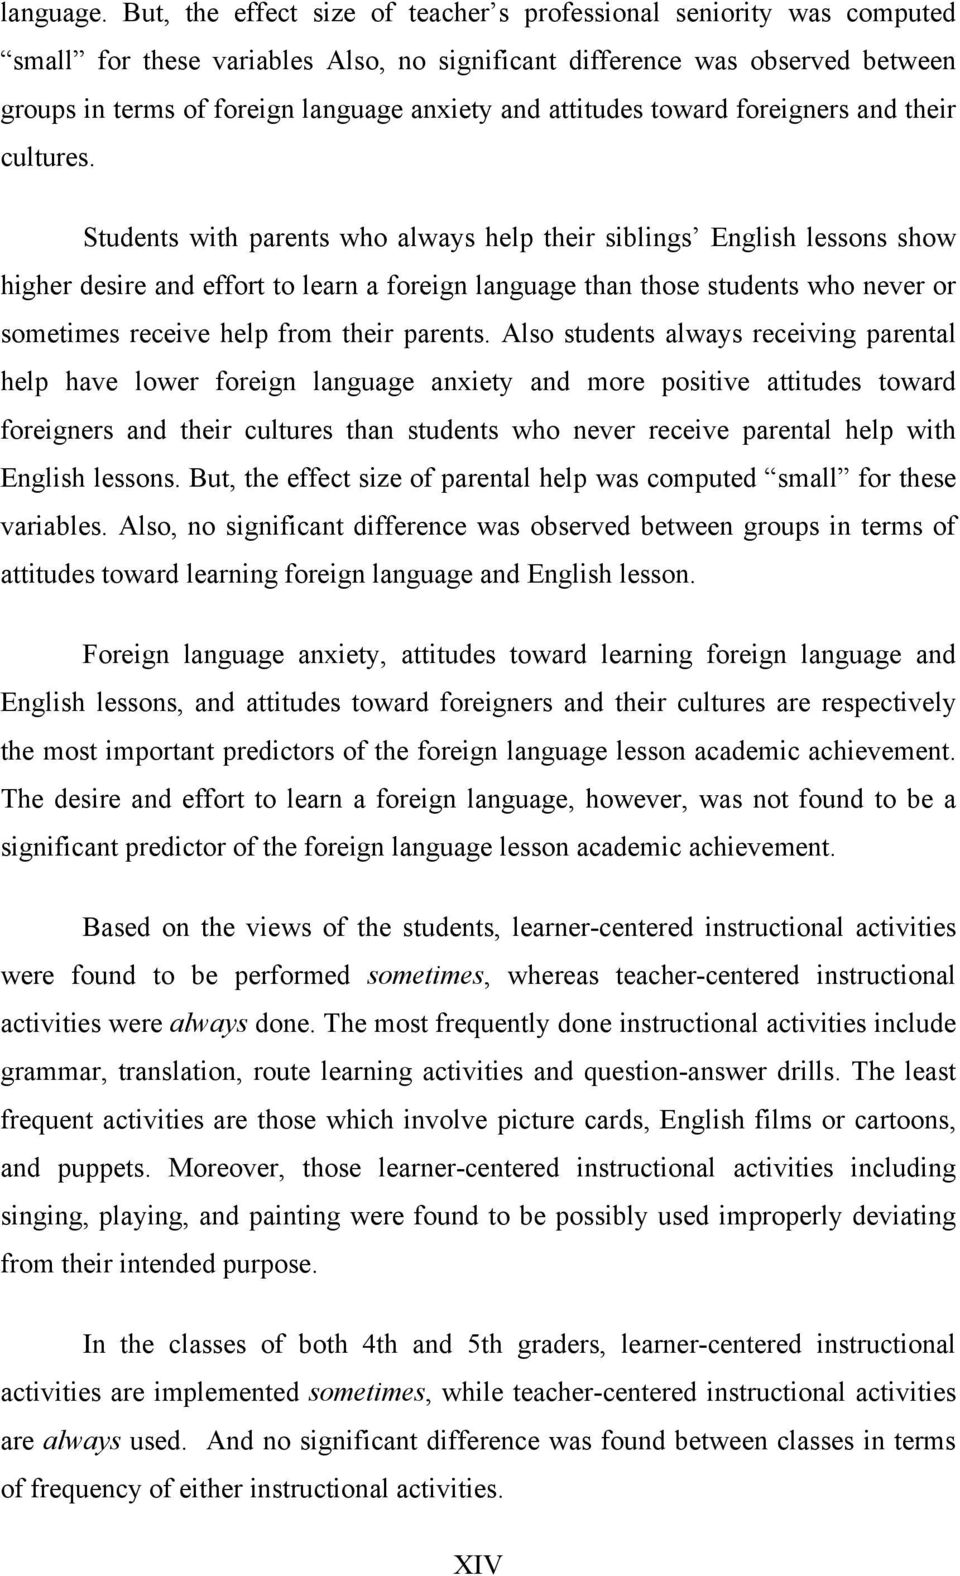 attitudes toward foreigners and their cultures.